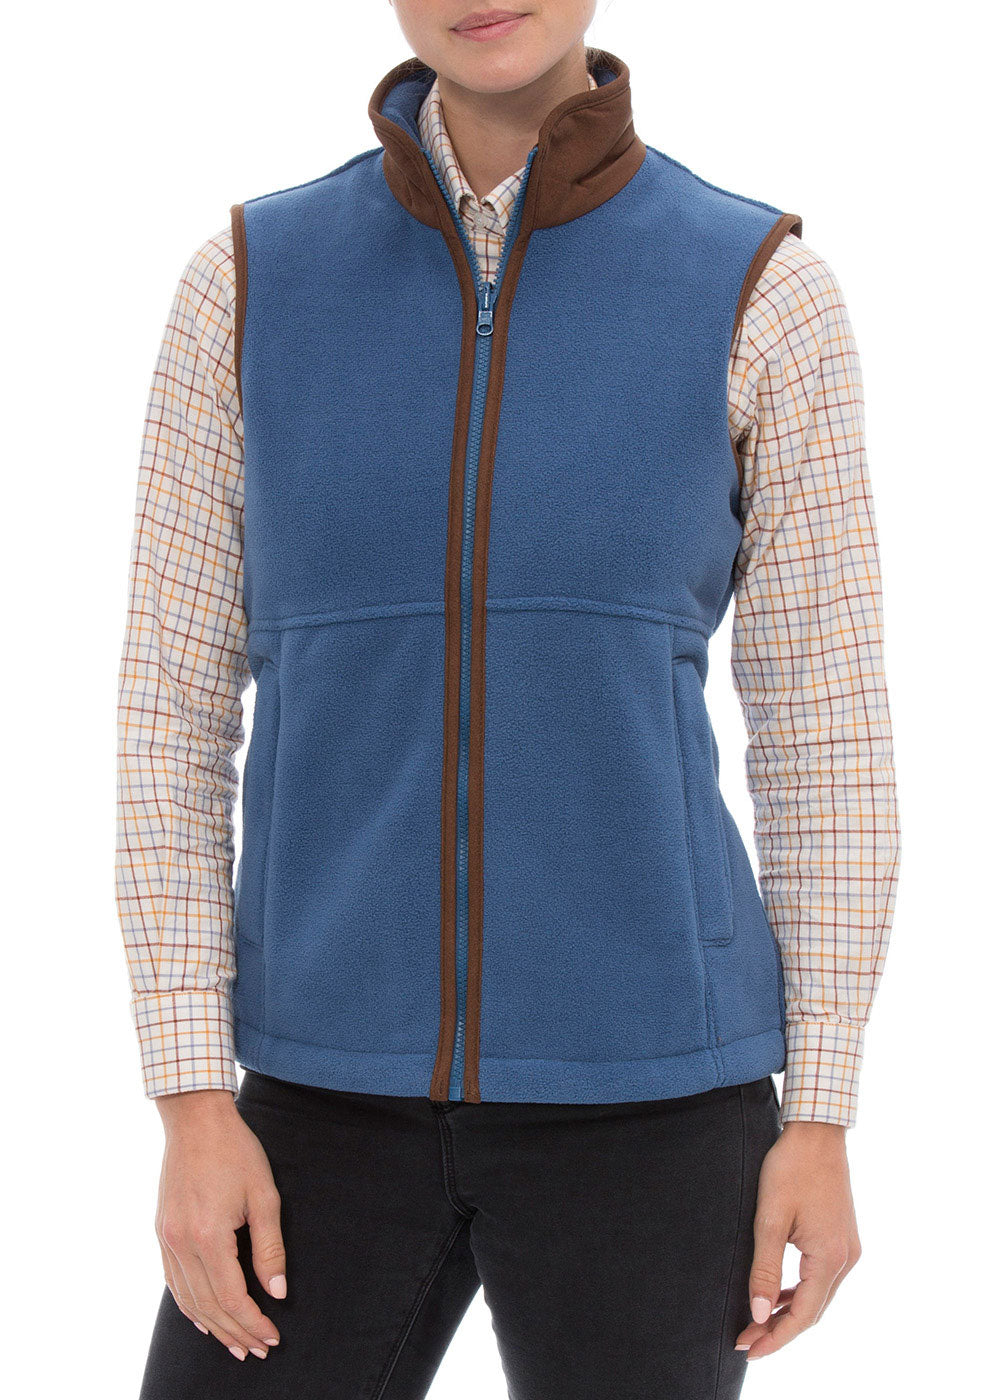 Blue Alan Paine Aylsham Fleece Gilet | Jean